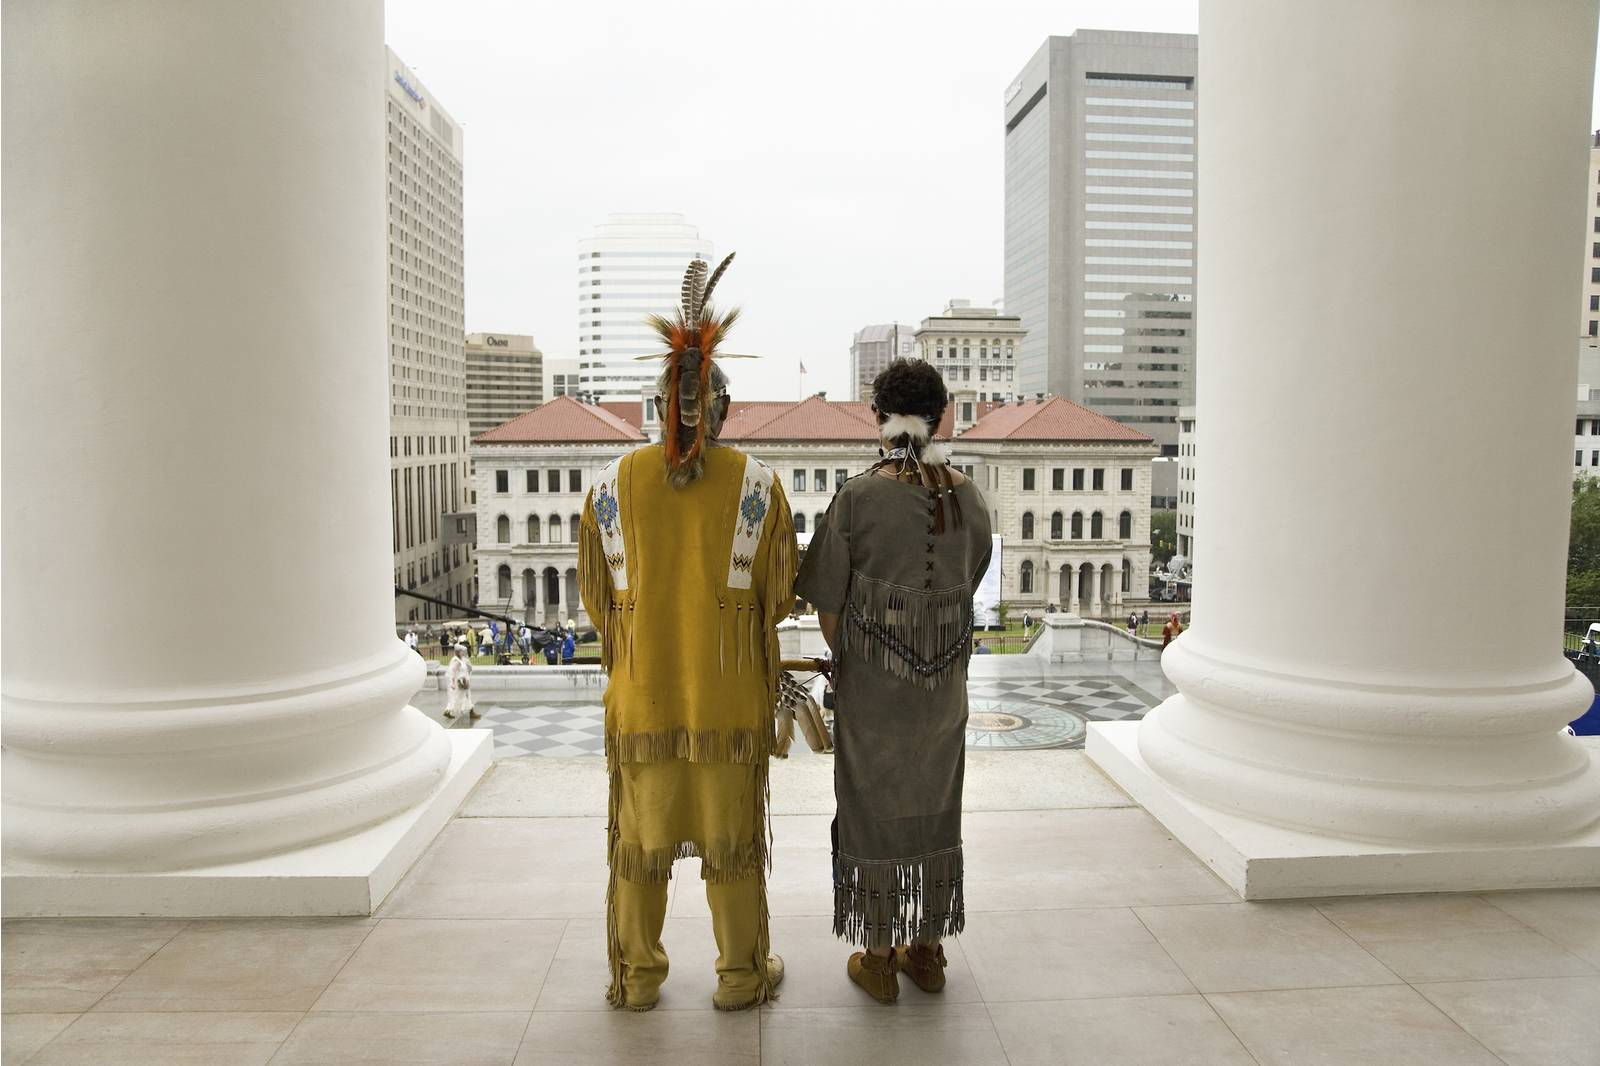 Two Powhatan Tribal members looking over Richmond, Va., from the State Capitol during ceremonies for the 400th Anniversary of the Jamestown Settlement on May 3, 2007. Joseph Sohm—UIG via Getty Images